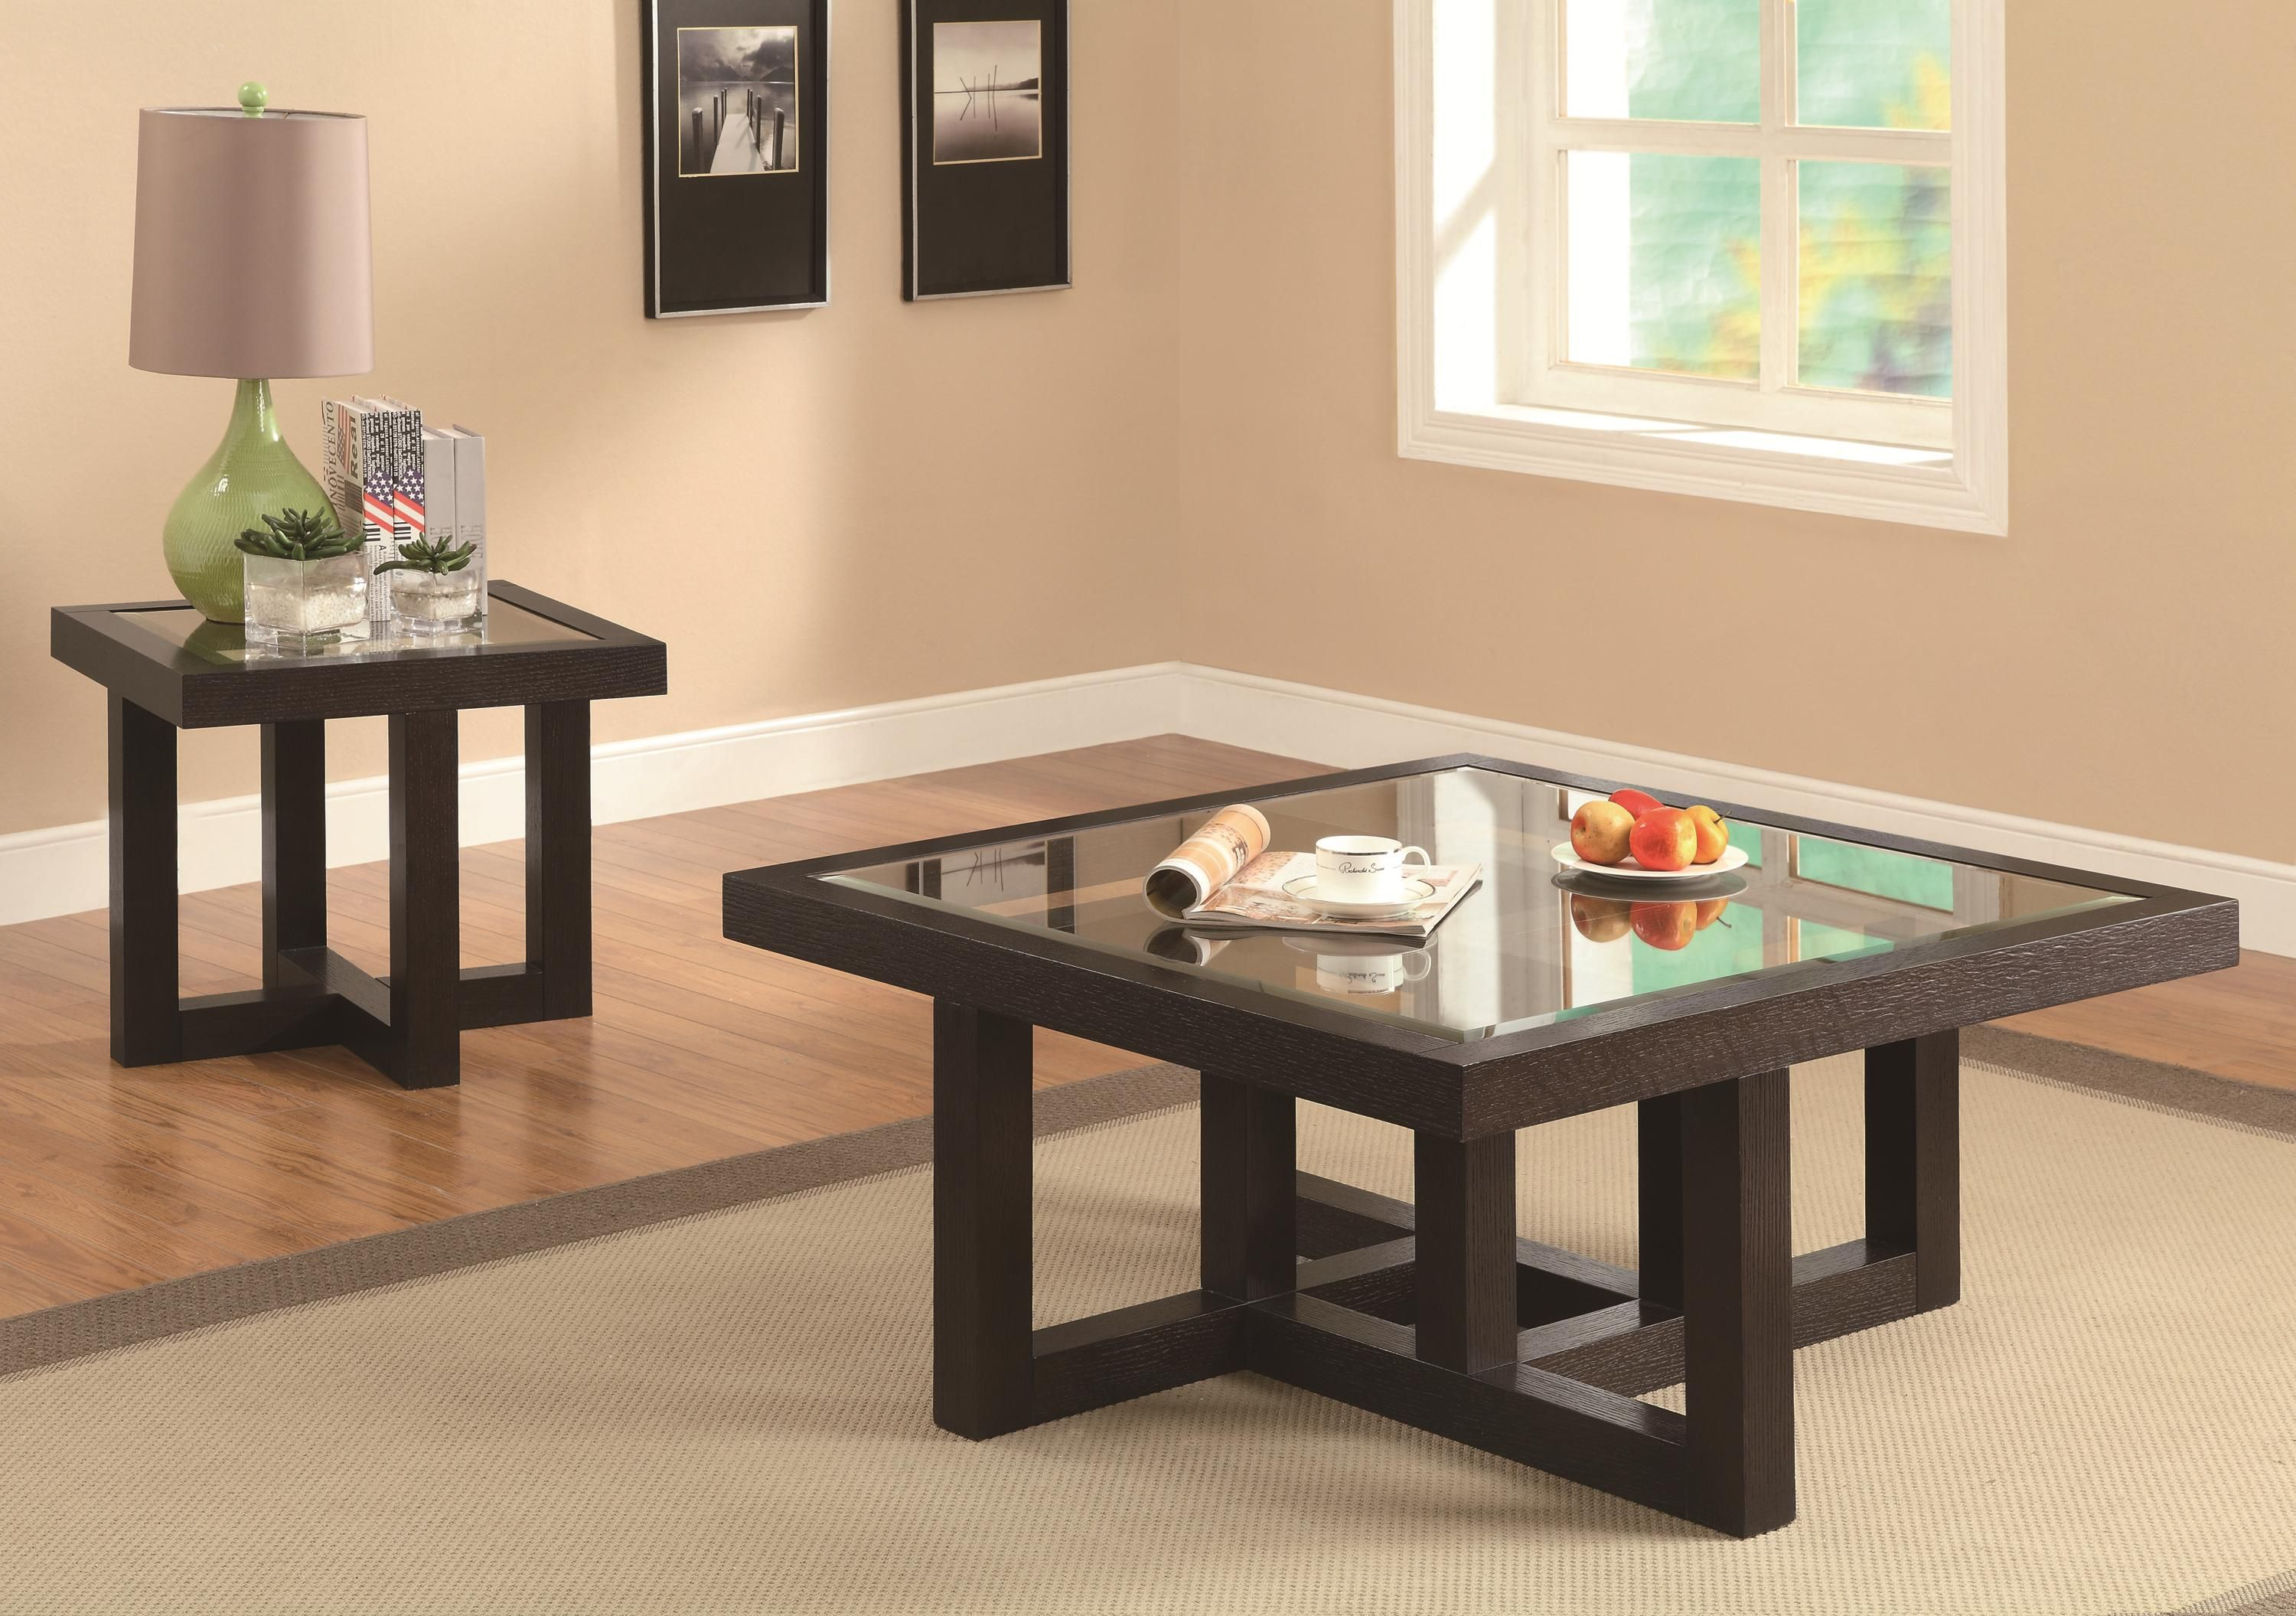 Contemporary Occational Group Coffee Table Home Coffee Tables Brown Coffee Table [ 2111 x 3000 Pixel ]